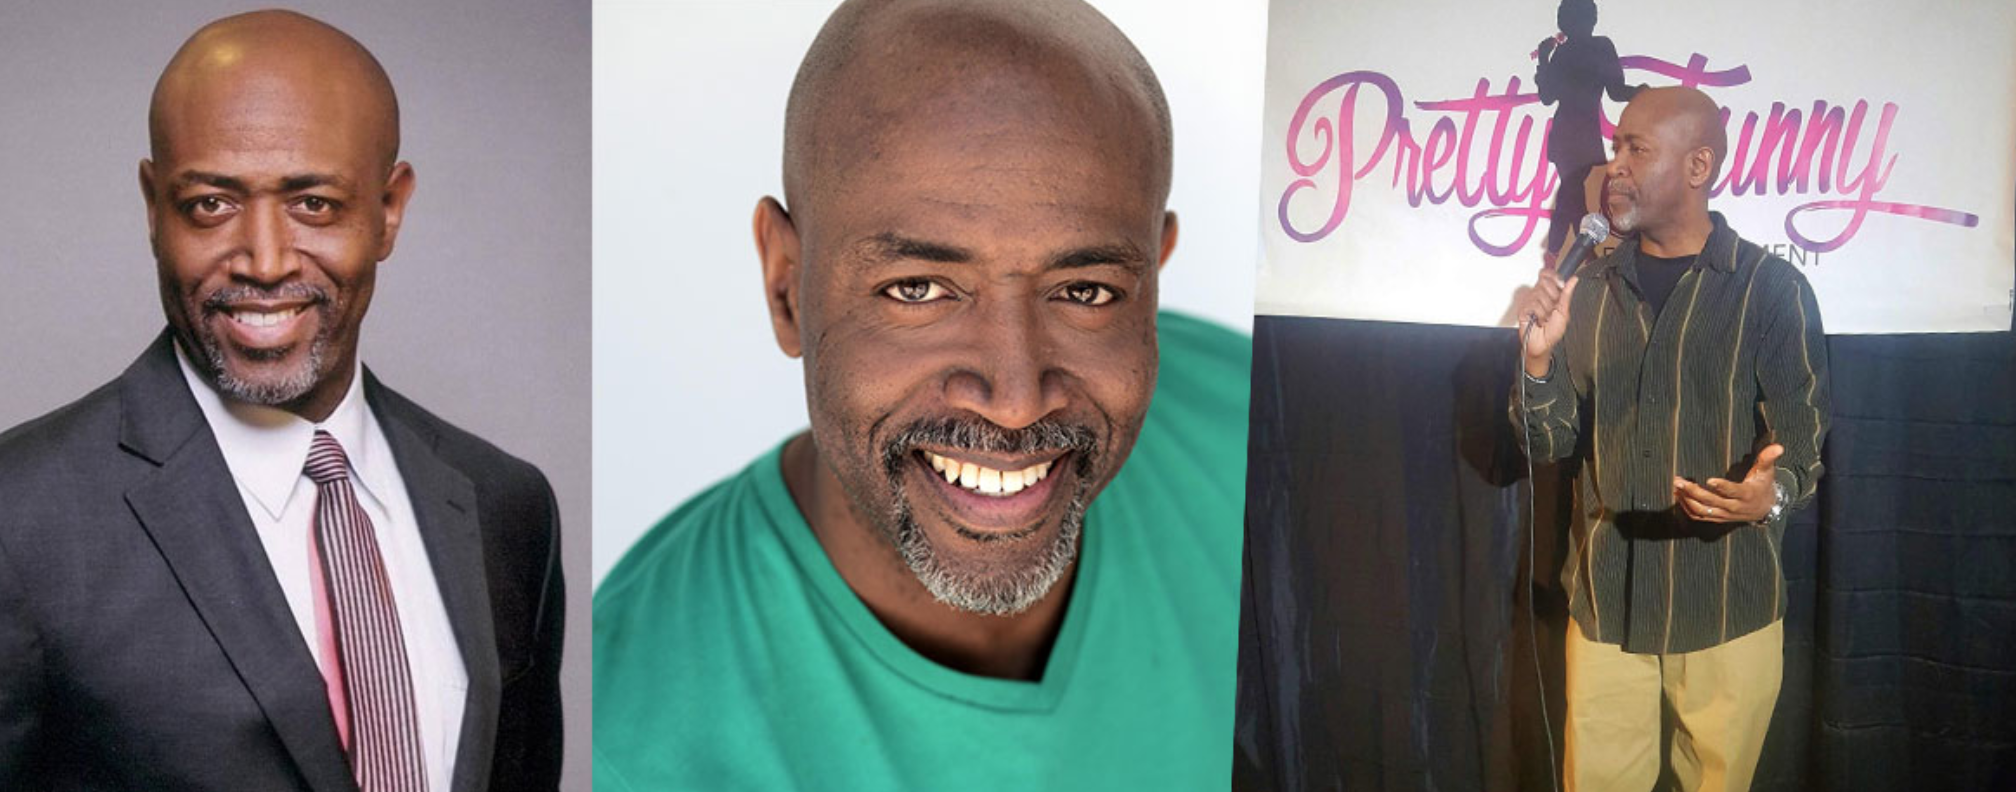 Maurice Brown is a faith-based comedian and comedic actor based in the DC area